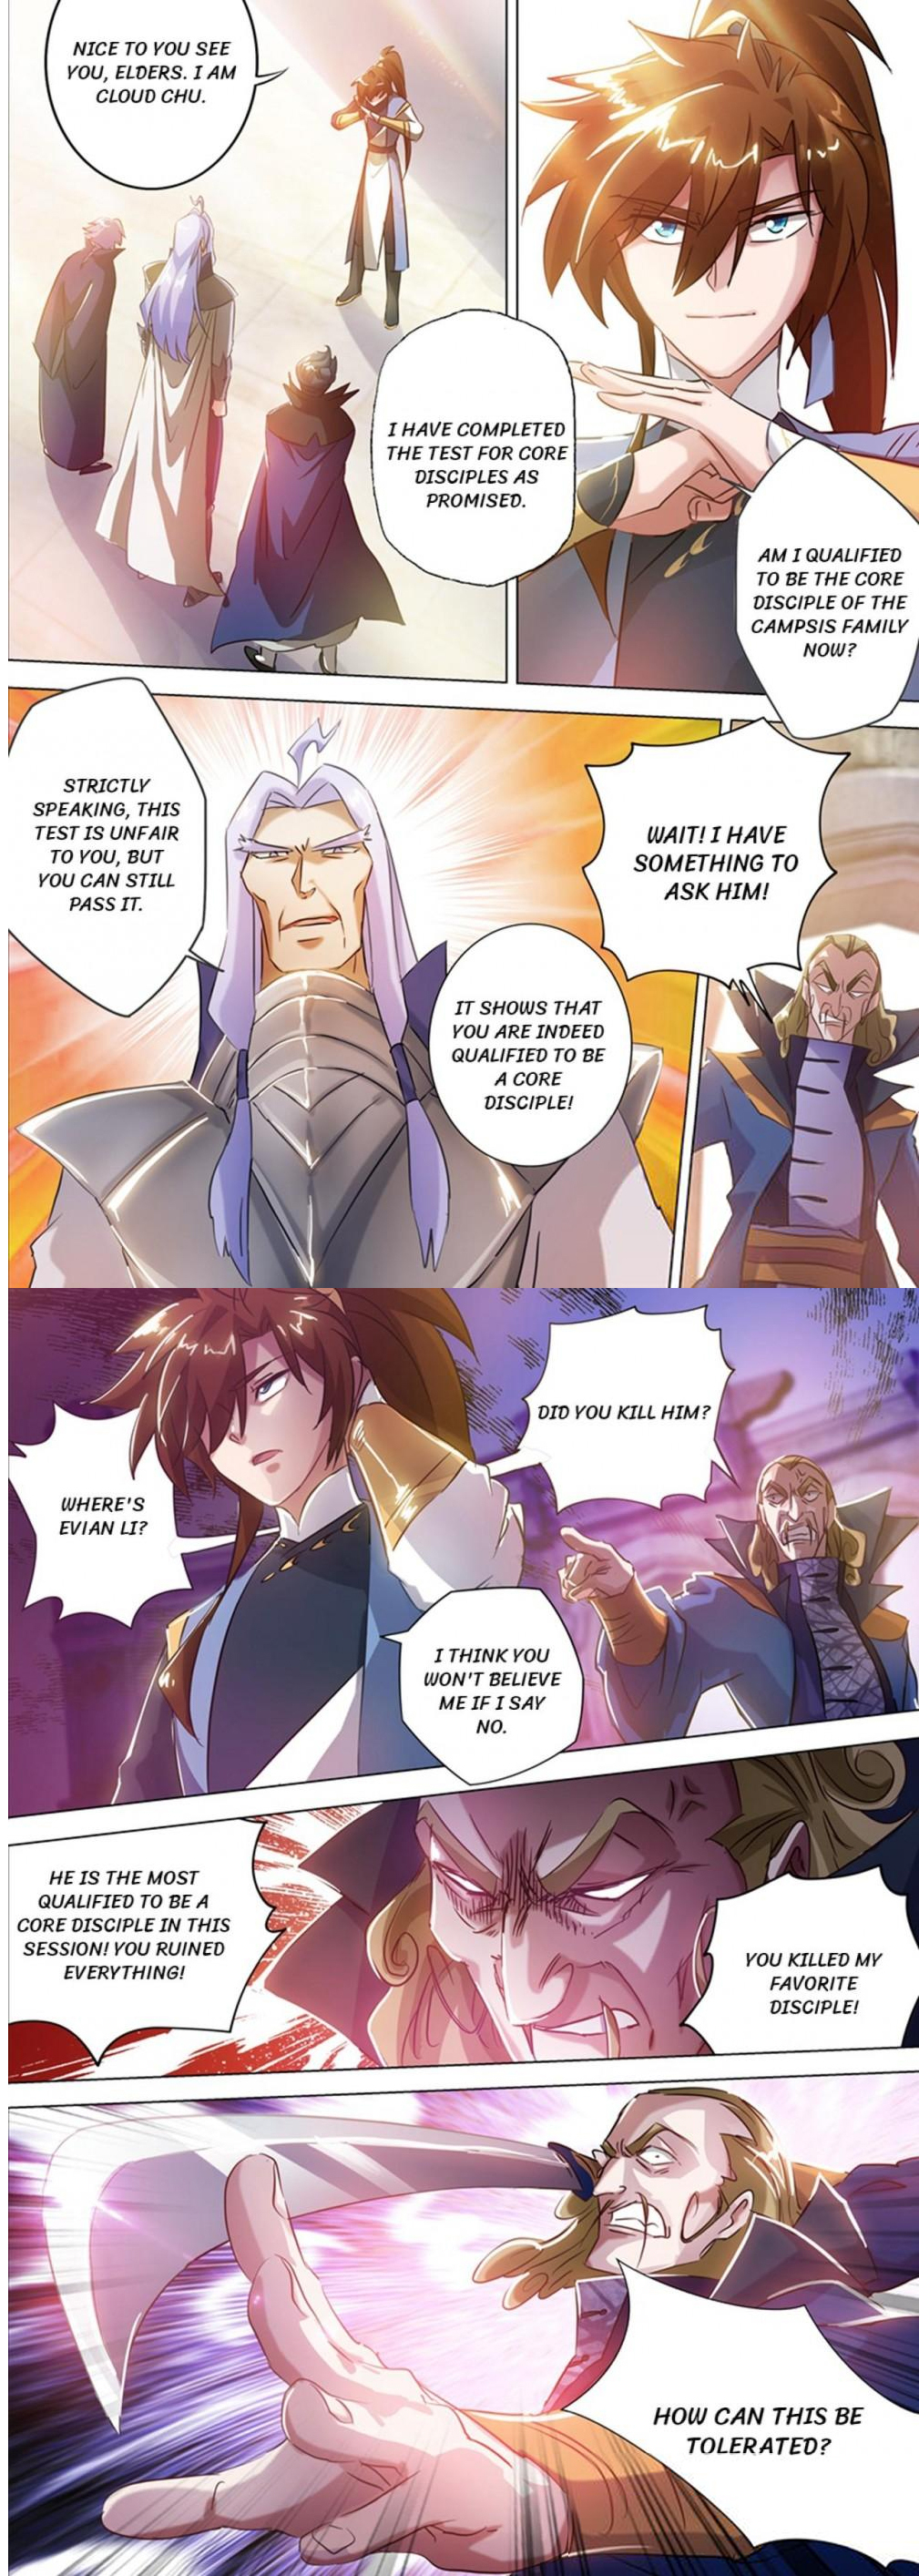 Spirit Sword Sovereign chapter 167 english - YouBa Manga